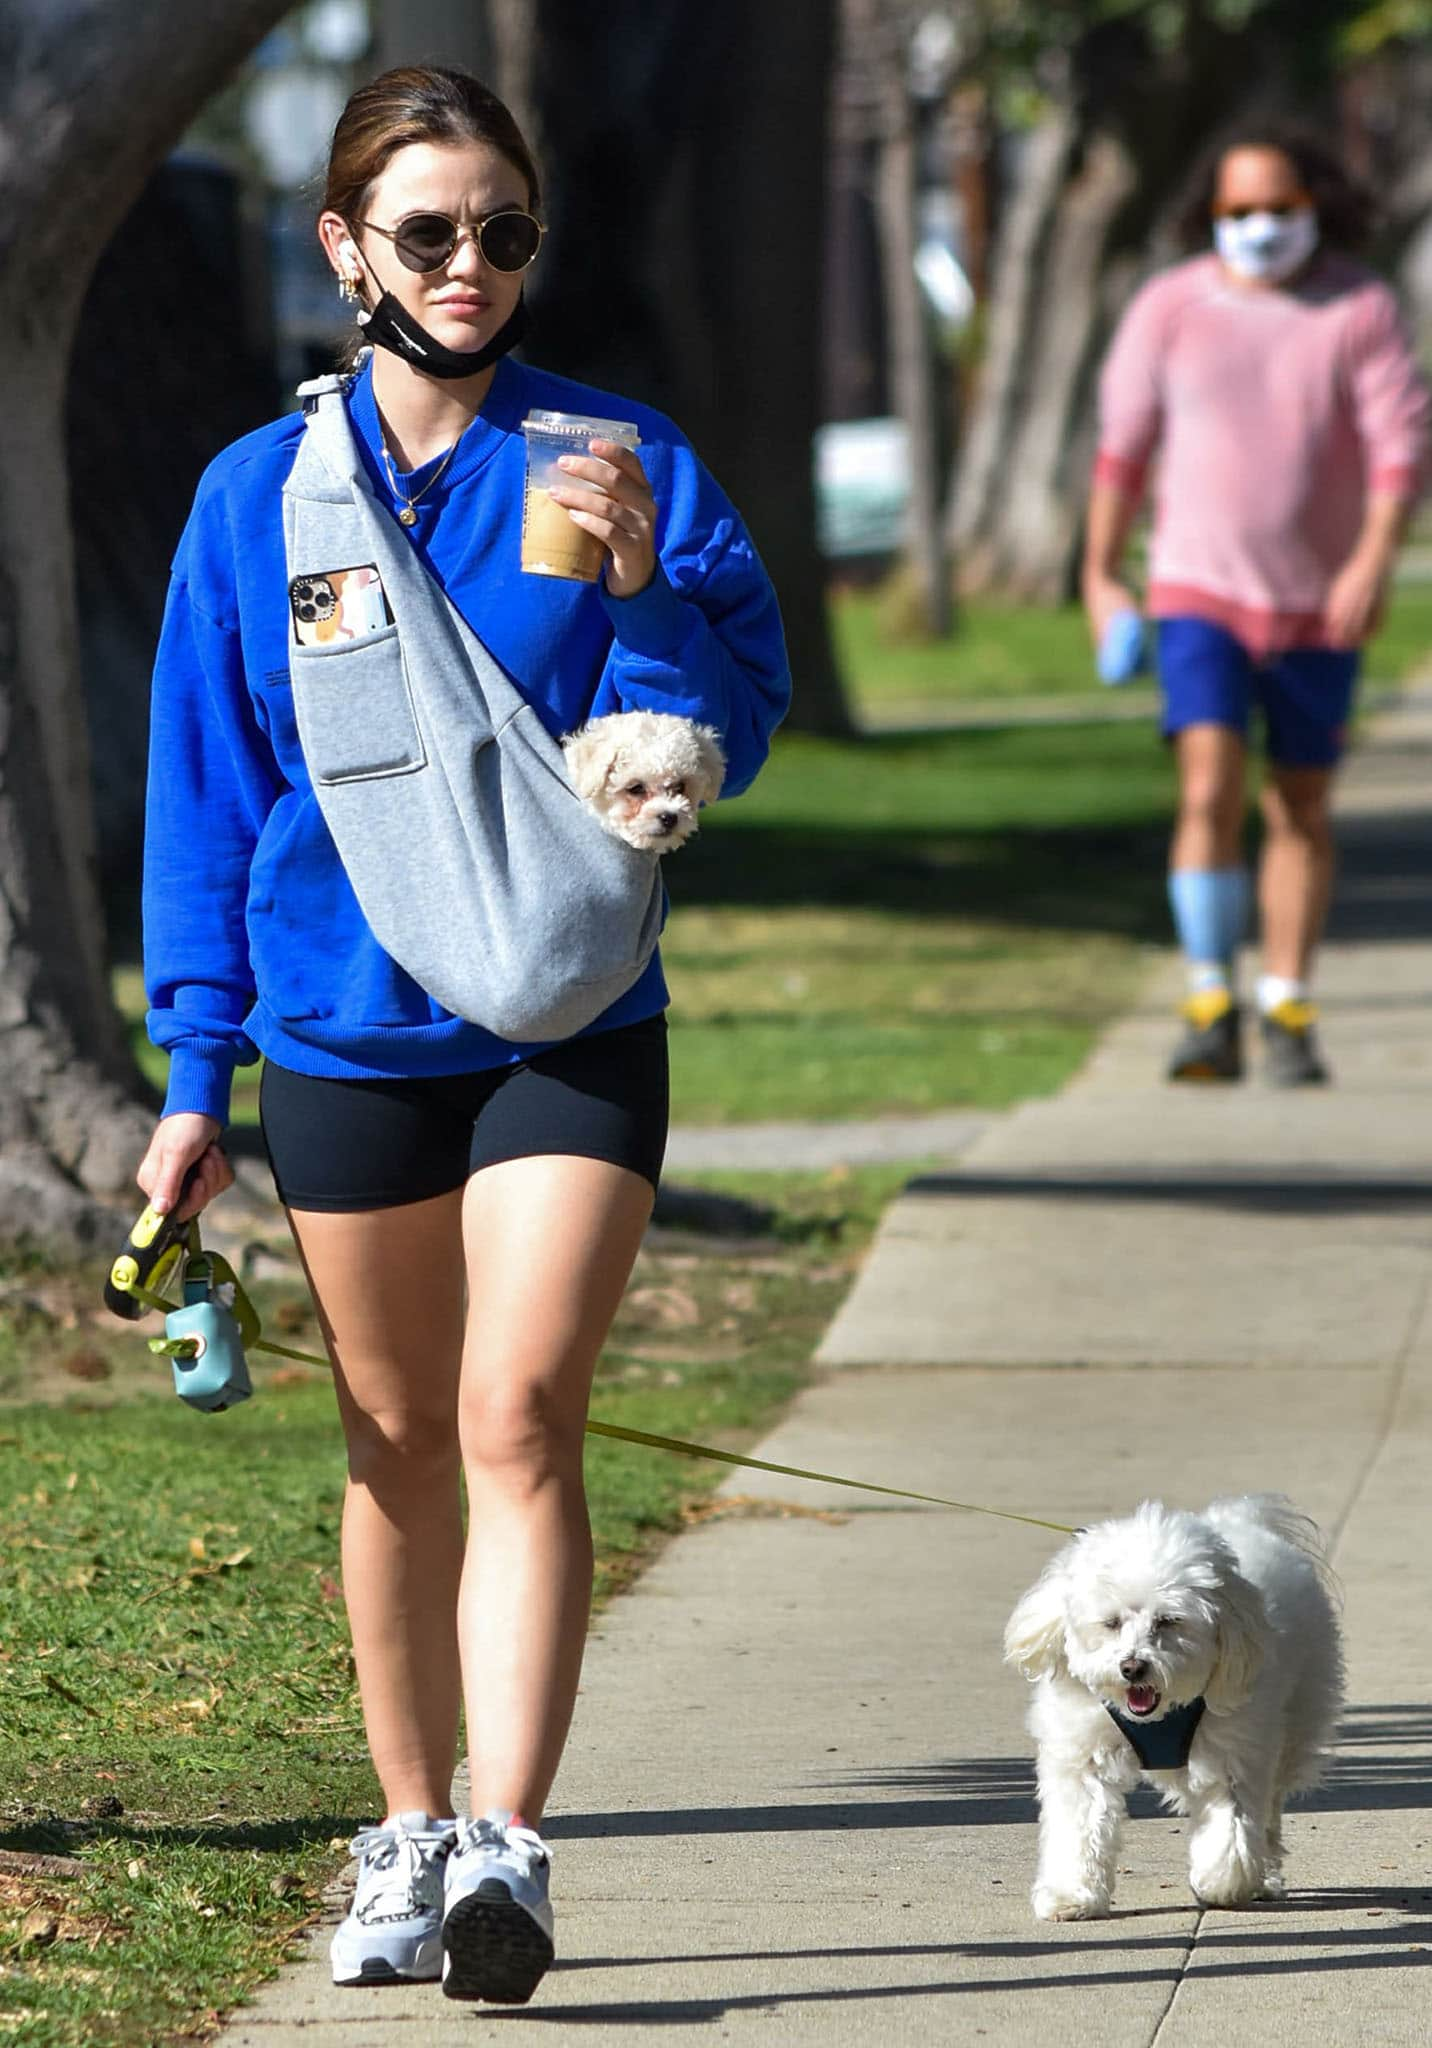 Fur mom Lucy Hale takes her dogs, Ethel and Elvis, out for a walk in Los Angeles on February 11, 2021